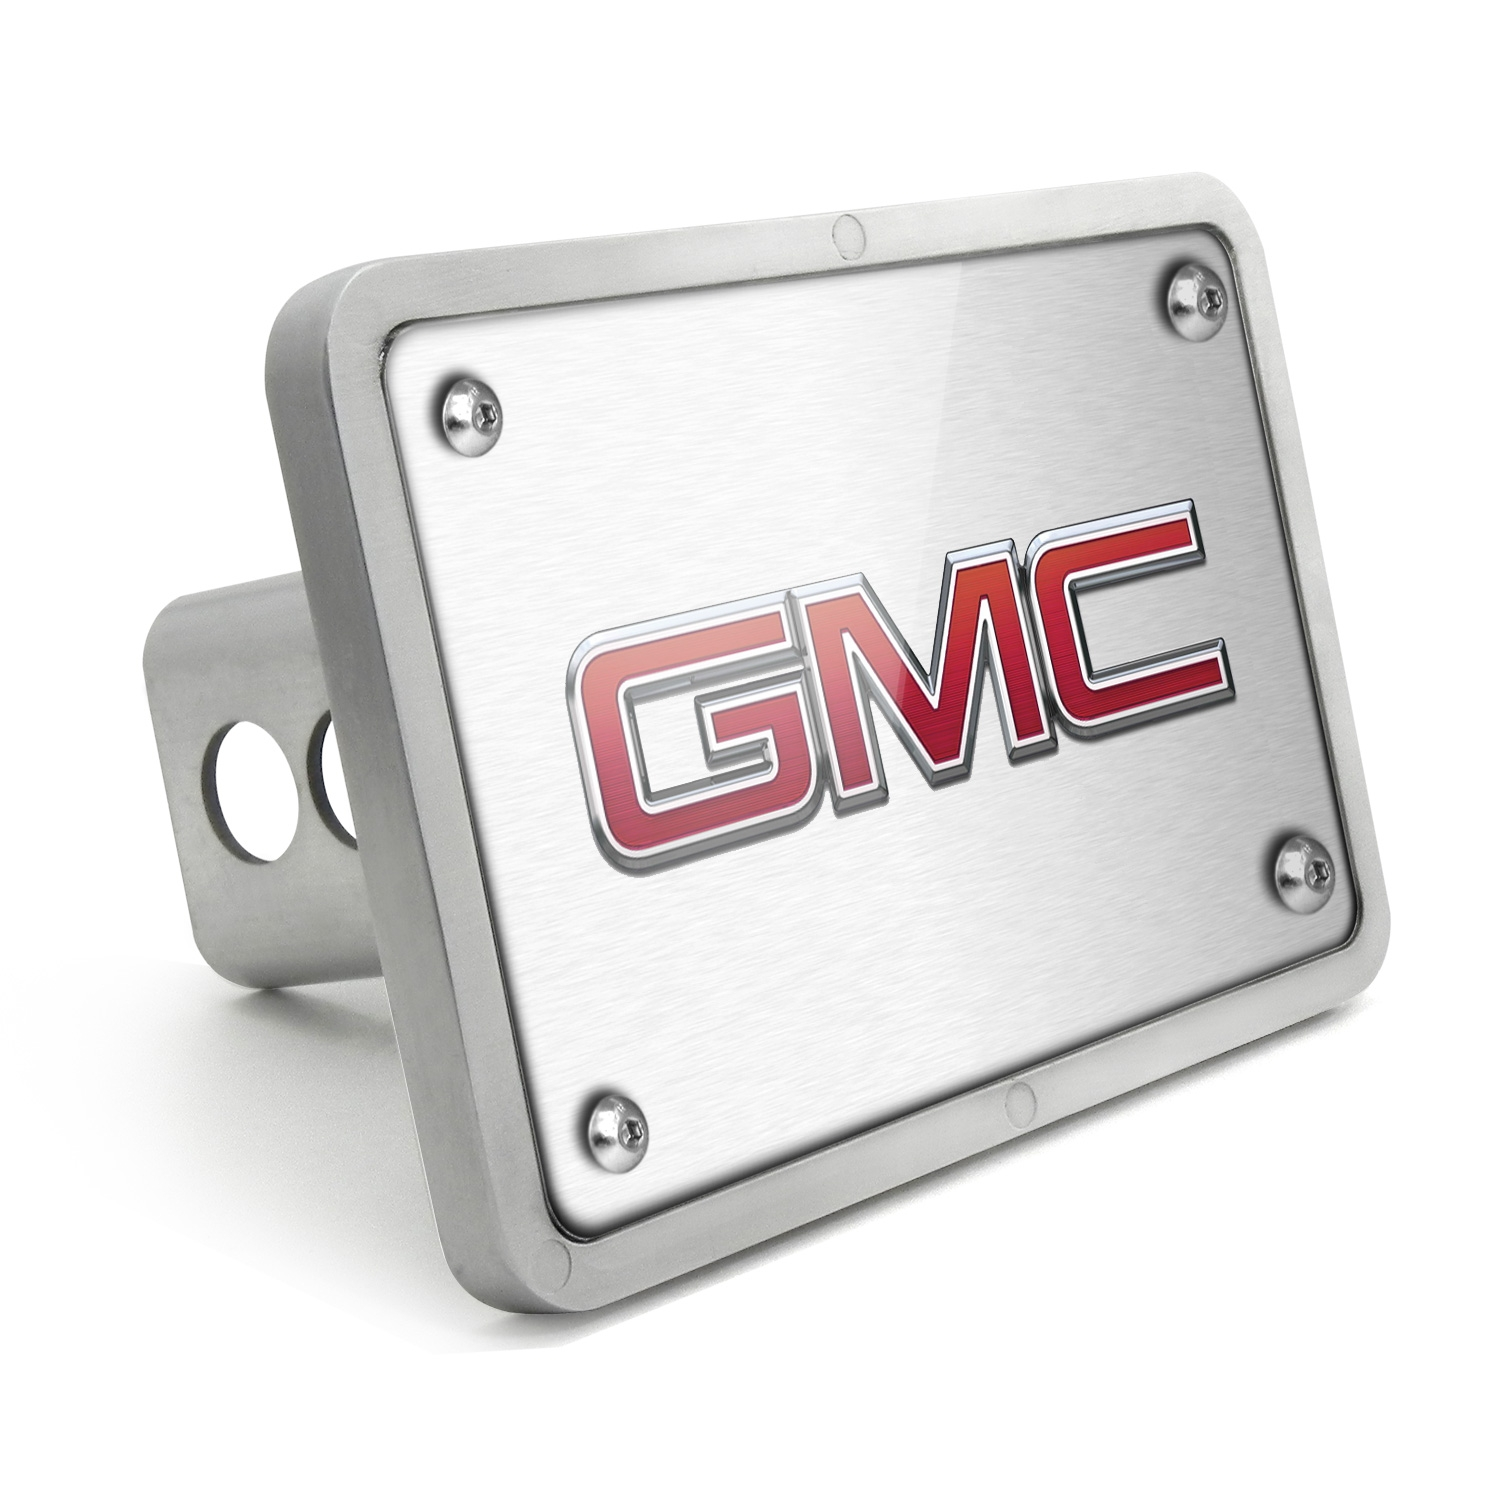 GMC UV Graphic Brushed Silver Billet Aluminum 2 inch Tow Hitch Cover